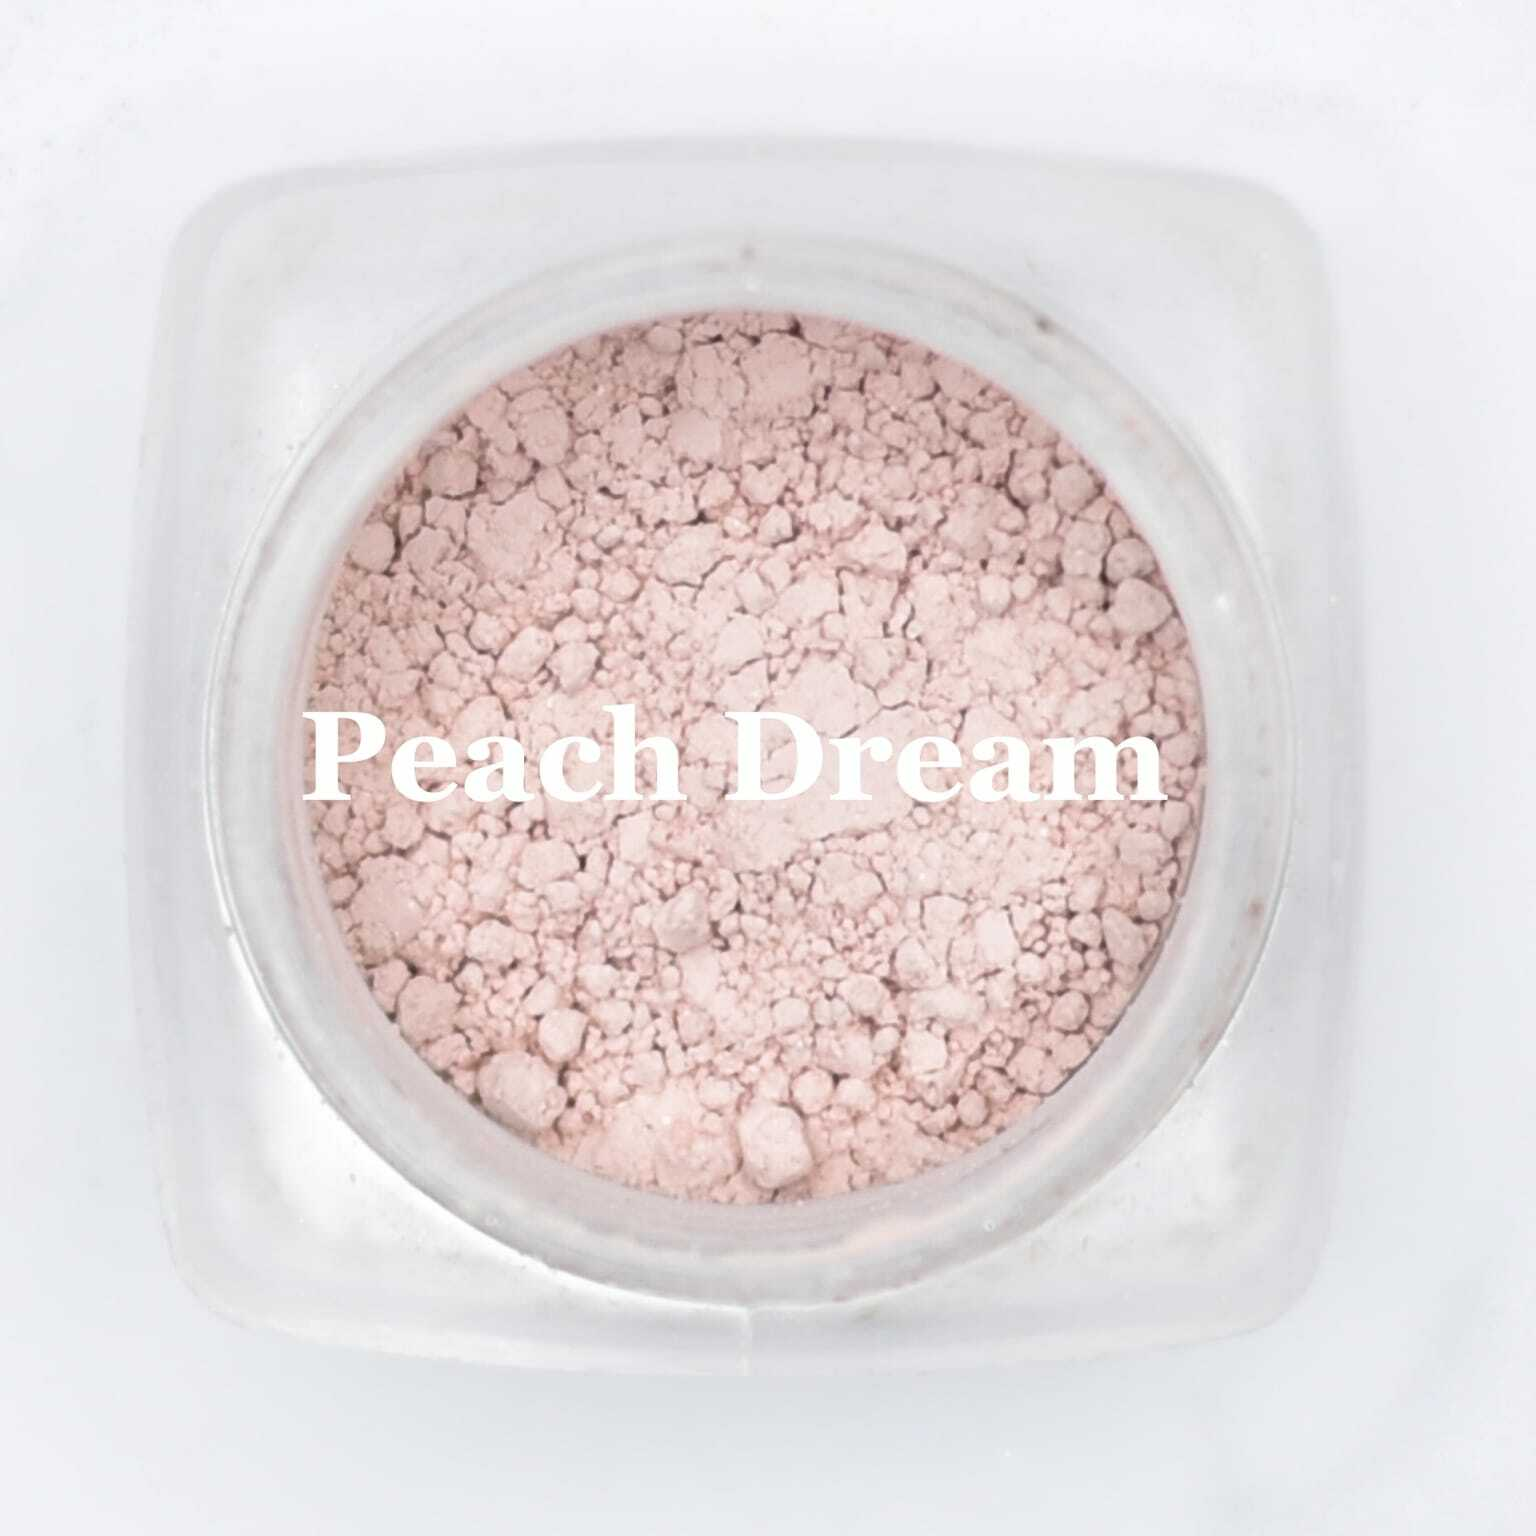 eye shadow peach dream